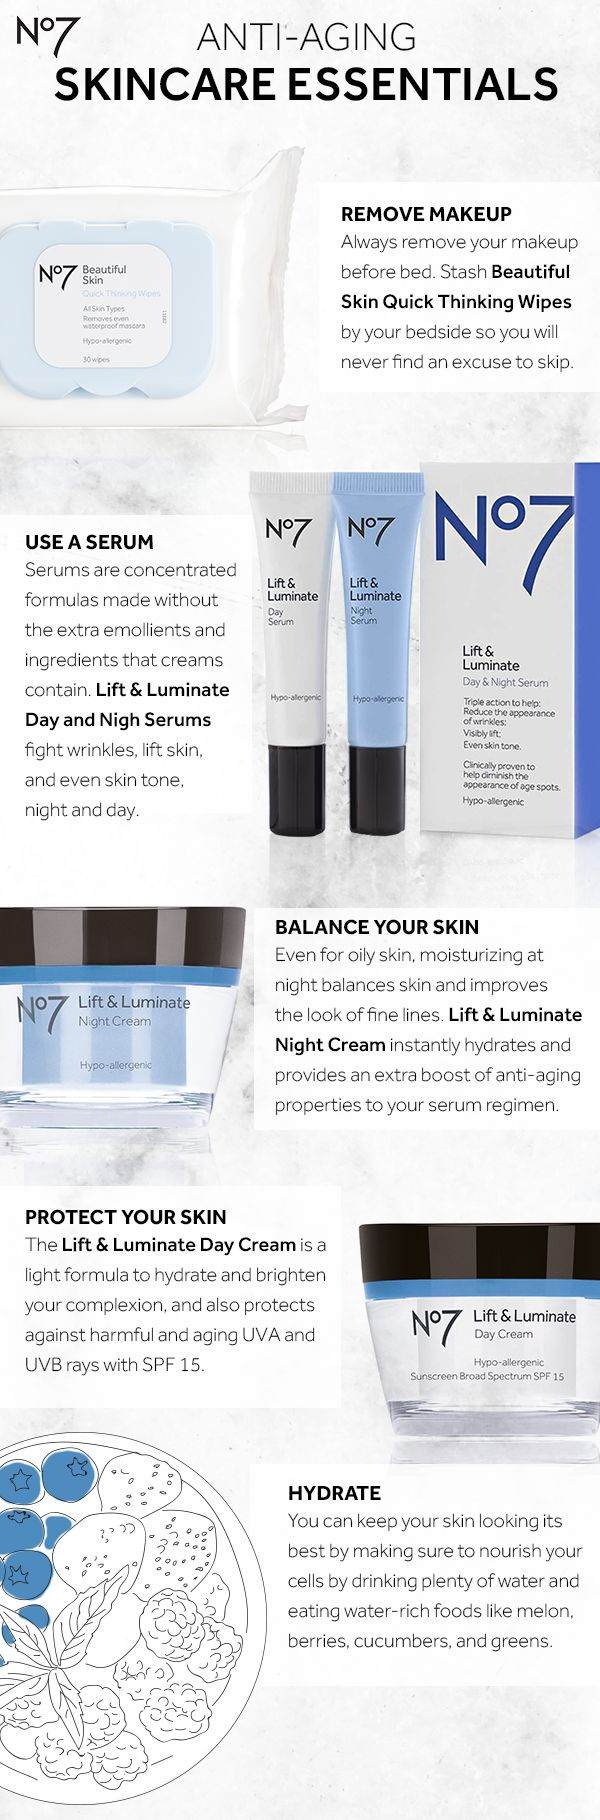 Want to get glowing skin? Fight lines and wrinkles and brighten skin with our No7 Lift & Luminate anti-aging skincare regimen for  morning and night.  Products featured (all available at @Target): No7 Beautiful Skin Quick Thinking Wipes: $6.99  No7 Lift & Luminate Day & Night Serum: $26.99 No7 Lift & Luminate Night Cream: $24.99 No7 Lift & Luminate Day Cream: $23.99